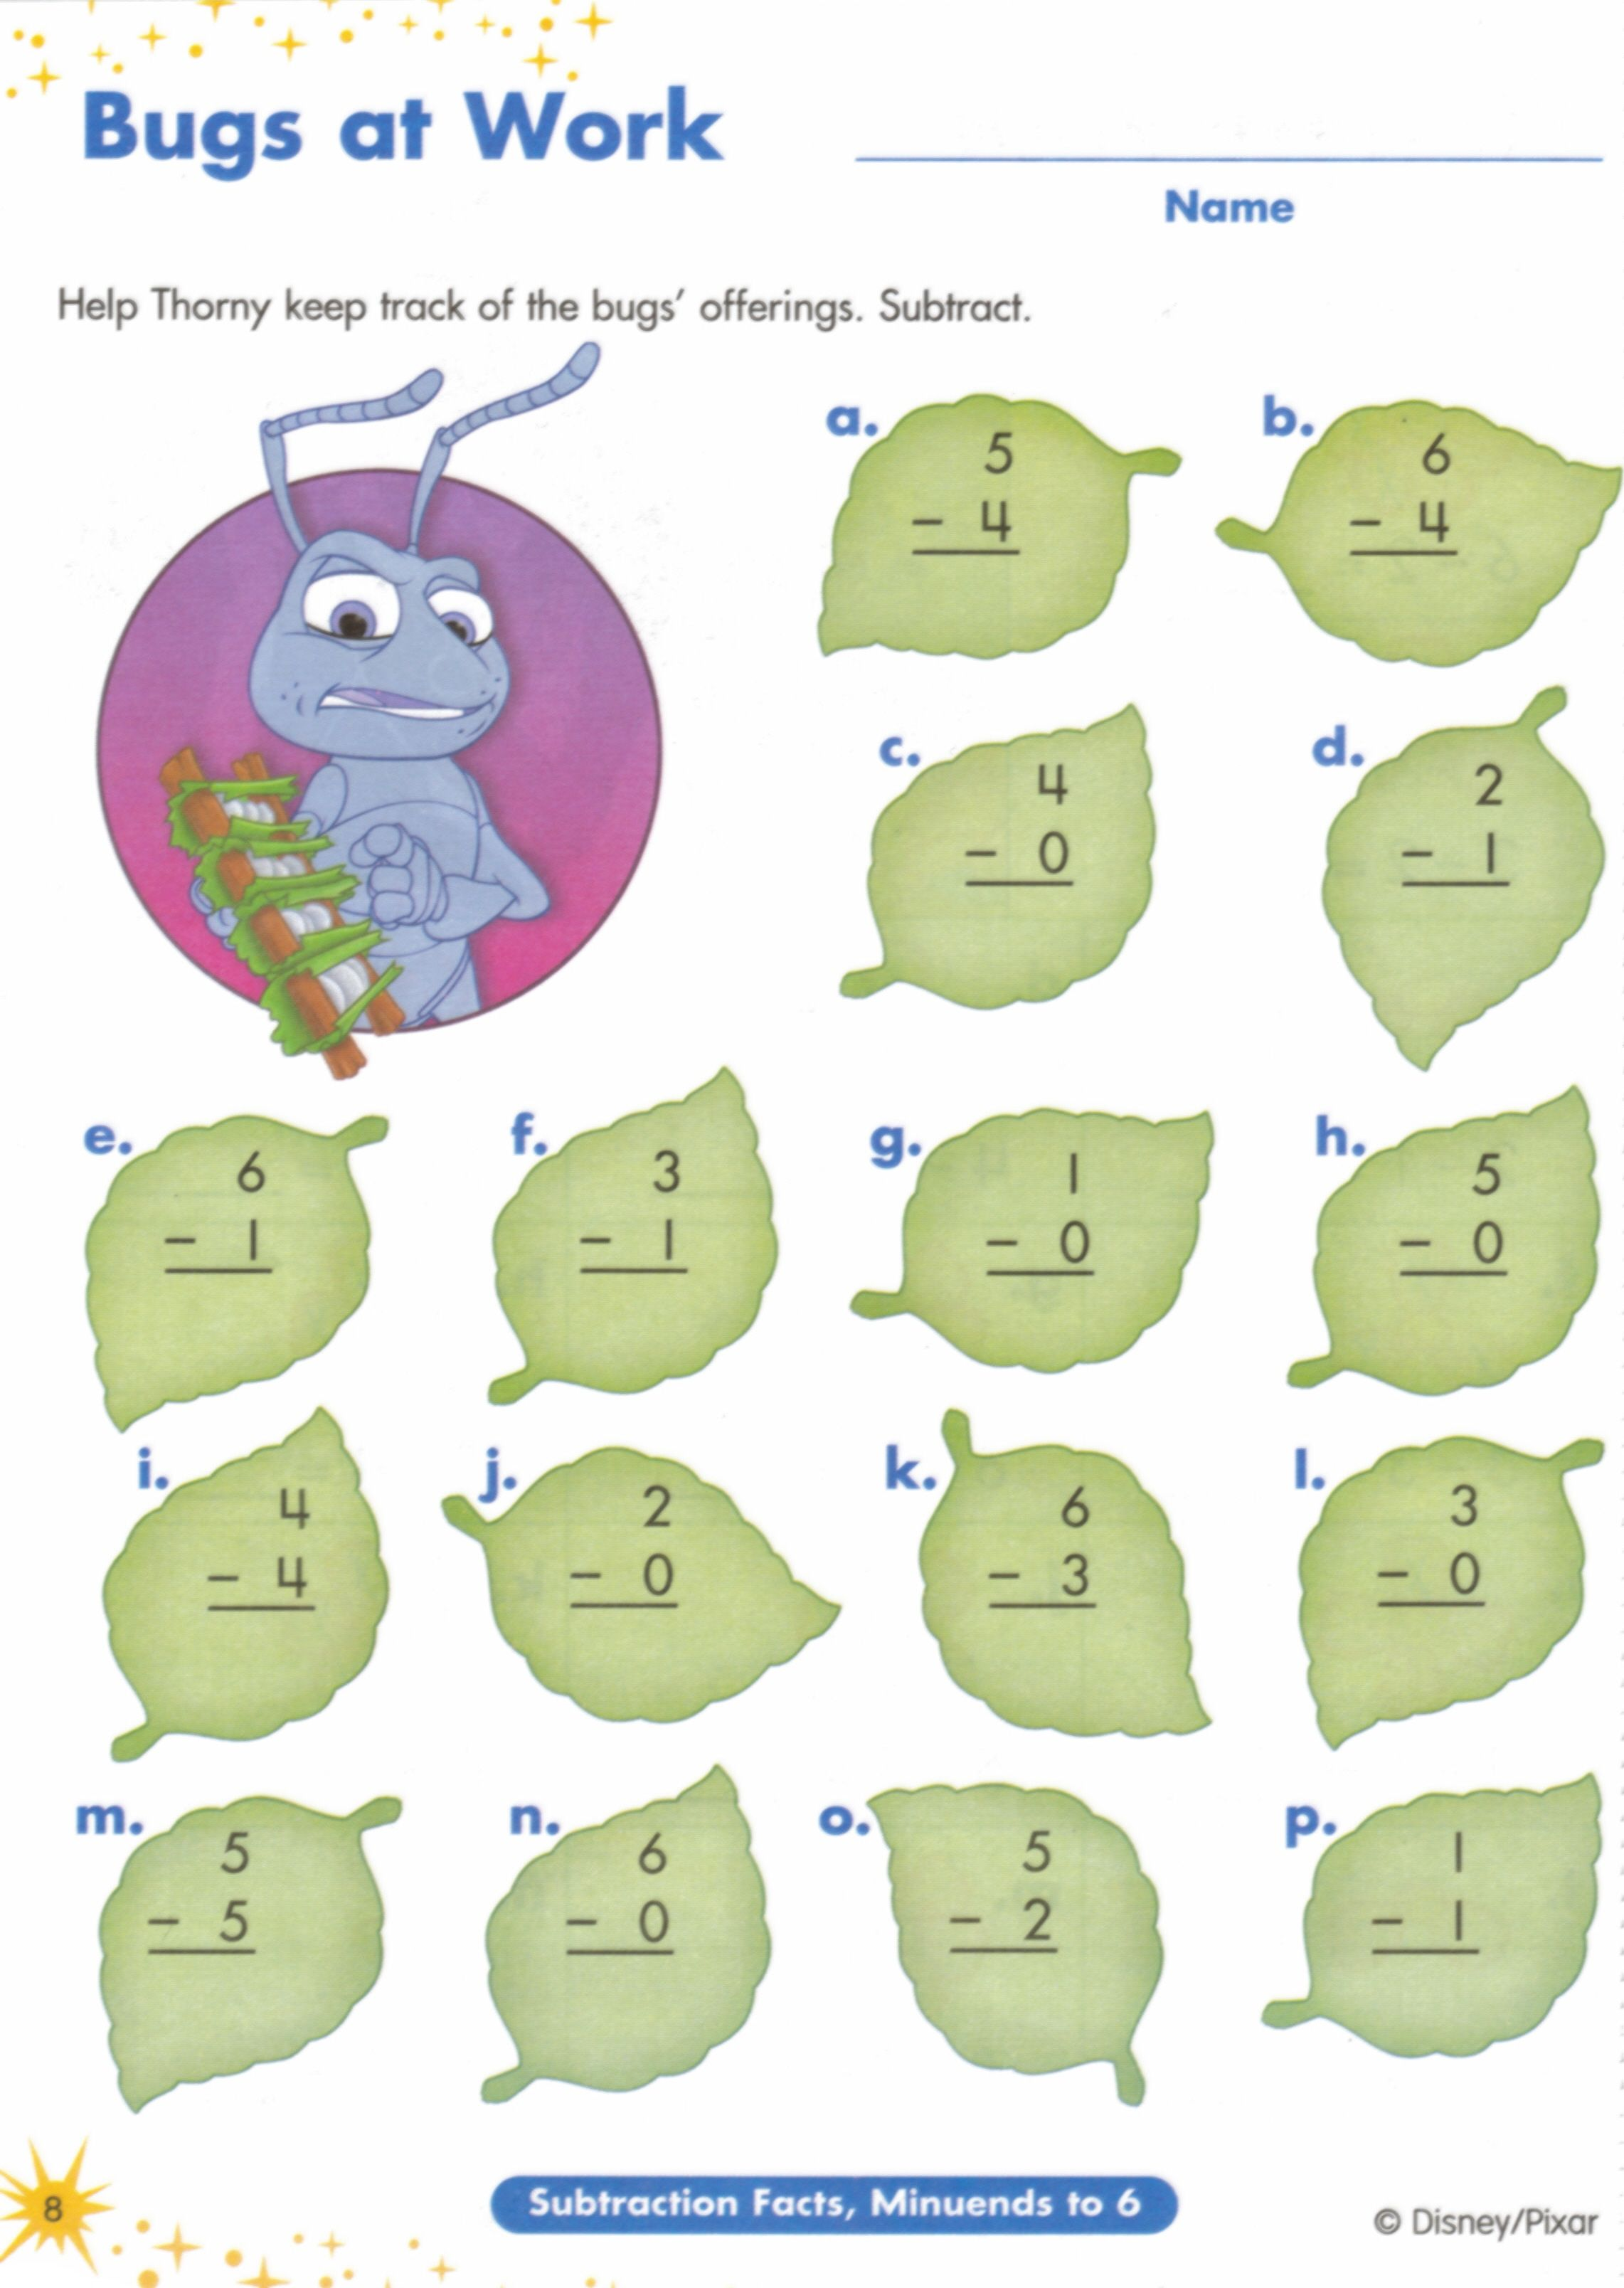 Weirdmailus  Winsome  Images About Worksheets On Pinterest  Fun Facts For Kids  With Licious  Images About Worksheets On Pinterest  Fun Facts For Kids Earth Day Worksheets And Jungles With Attractive Food Journal Worksheet Also Expanded Notation Worksheet In Addition Number Bond Worksheet And Mean And Median Worksheets As Well As United States Geography Worksheets Additionally John Locke Worksheet From Pinterestcom With Weirdmailus  Licious  Images About Worksheets On Pinterest  Fun Facts For Kids  With Attractive  Images About Worksheets On Pinterest  Fun Facts For Kids Earth Day Worksheets And Jungles And Winsome Food Journal Worksheet Also Expanded Notation Worksheet In Addition Number Bond Worksheet From Pinterestcom